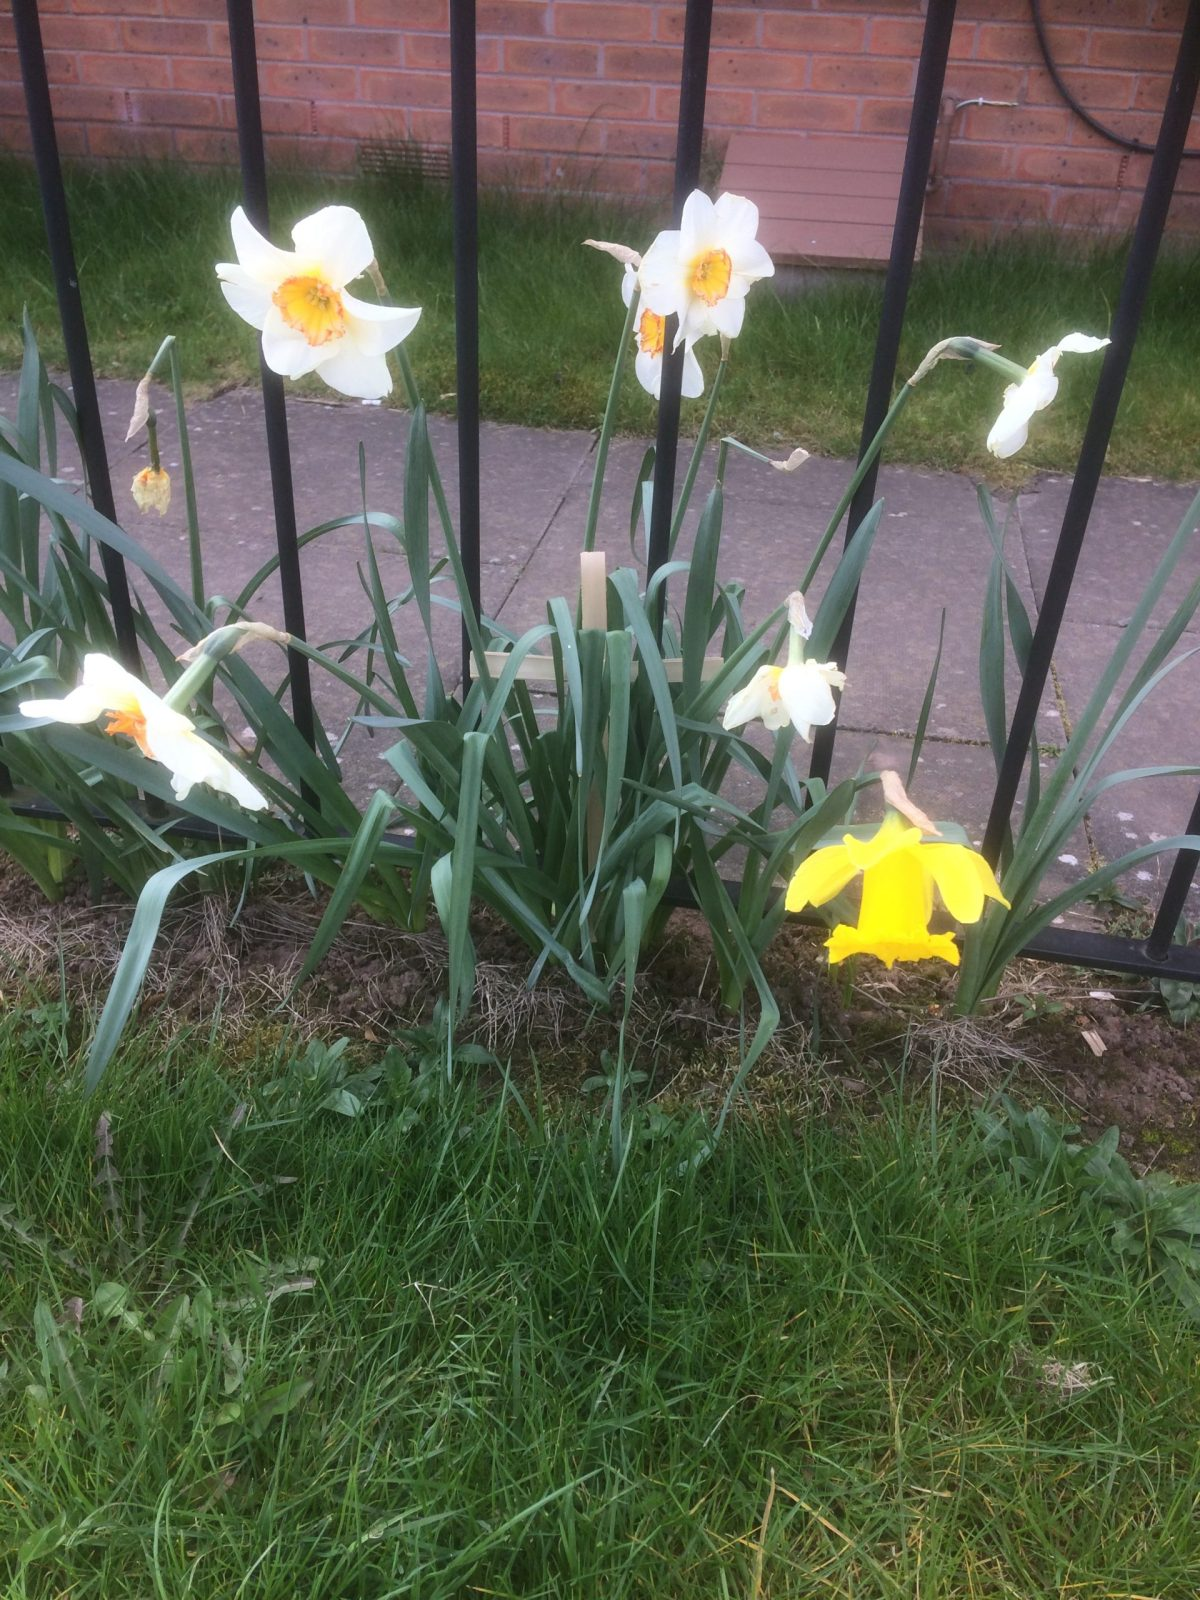 Palm Cross amongst 5 daffodils beside a footpath